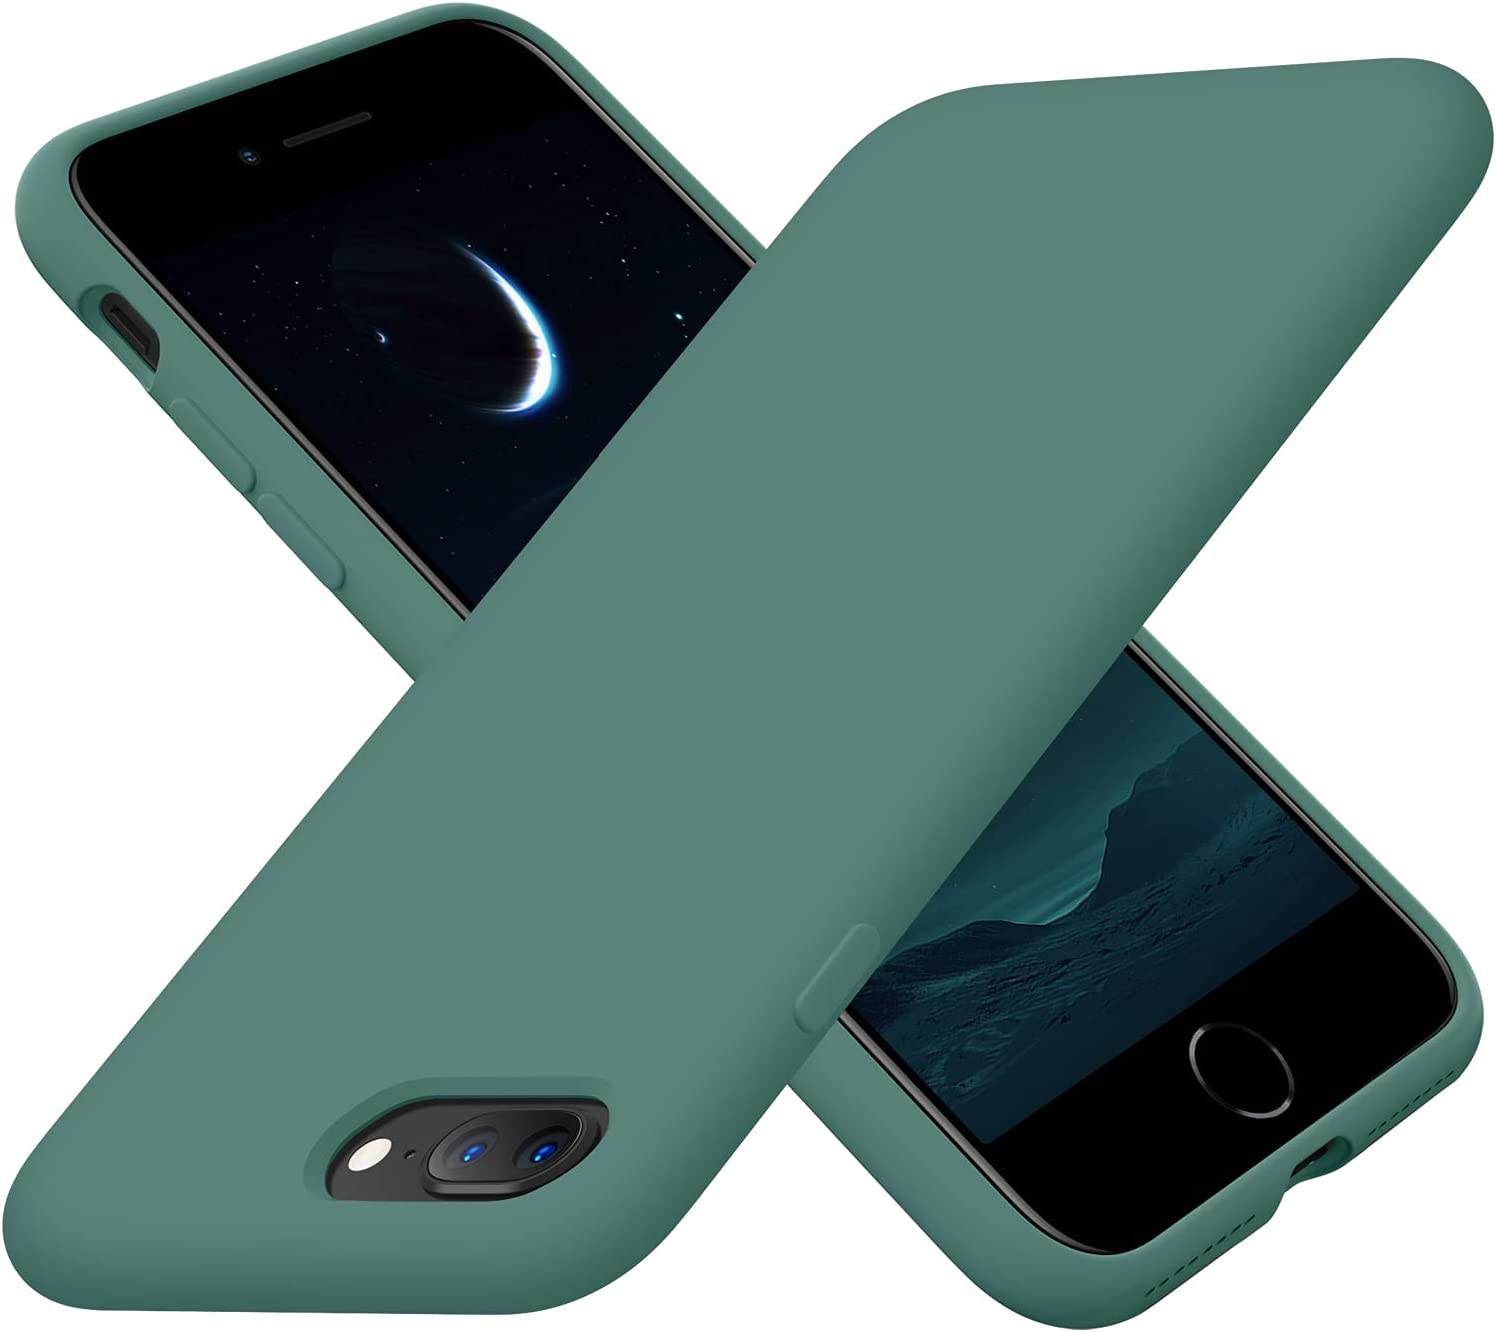 Cordking iPhone 8 Plus Case, iPhone 7 Plus Case, Silicone Ultra Slim Shockproof Phone Case with [Soft Anti-Scratch Microfiber Lining], 5.5 inch, Midnight Green